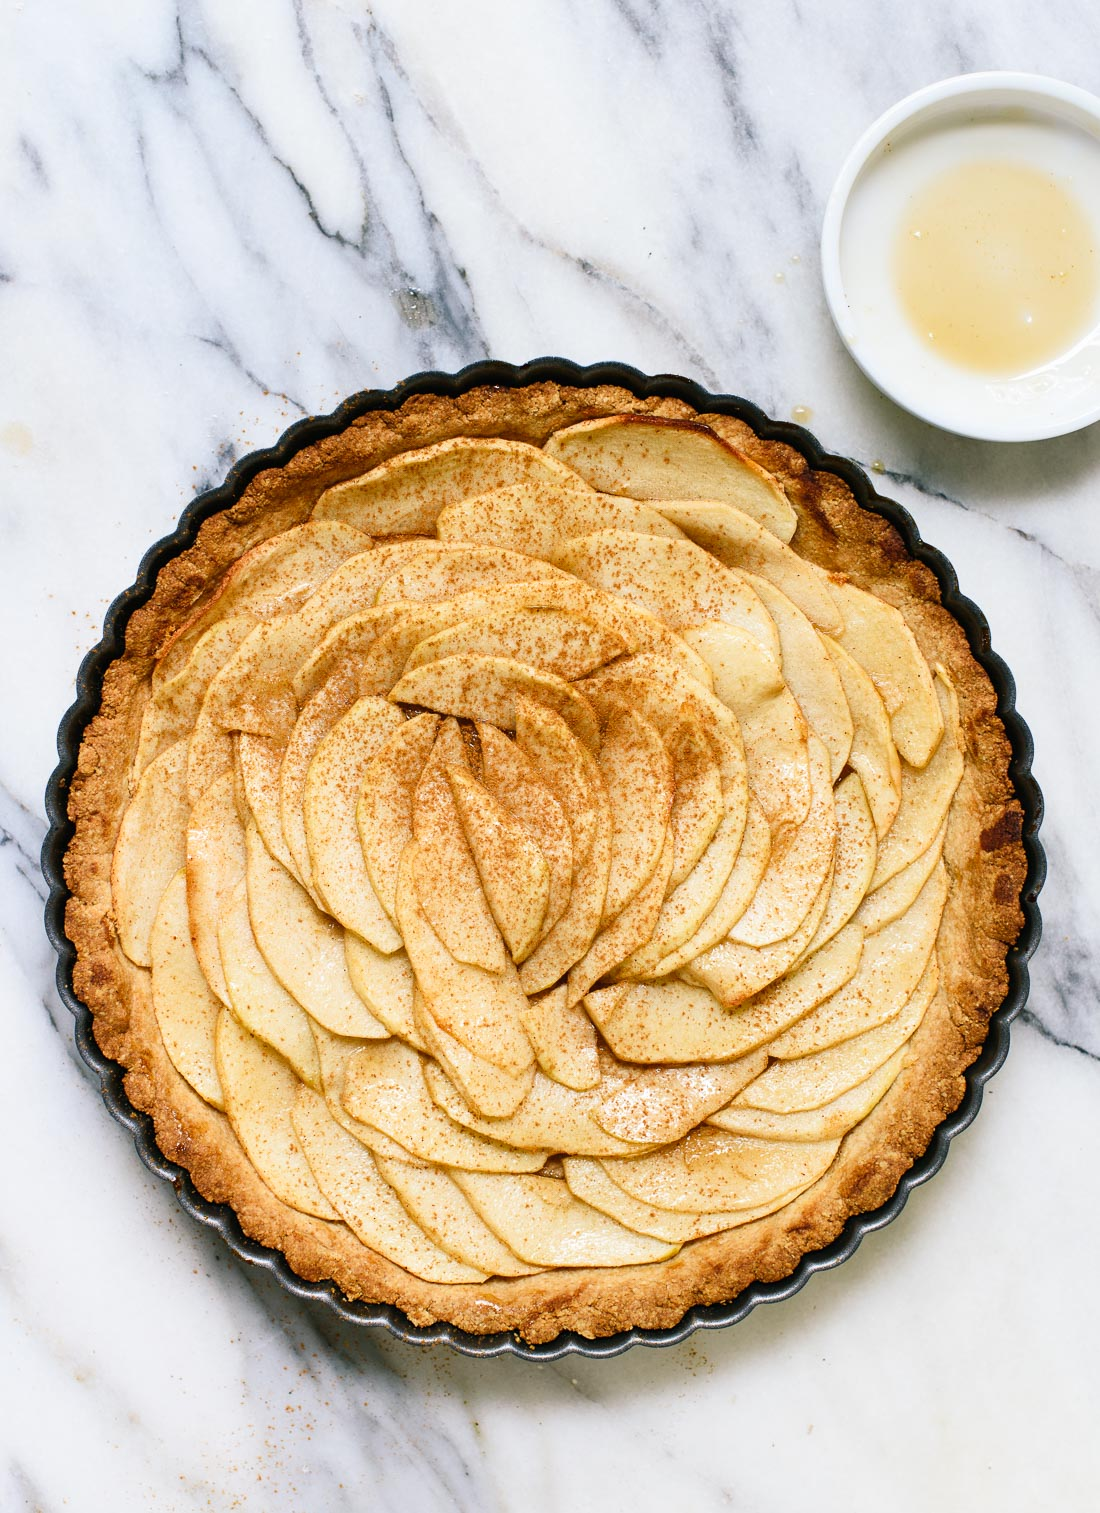 How To Make Delicious Gluten-Free Apple Tart